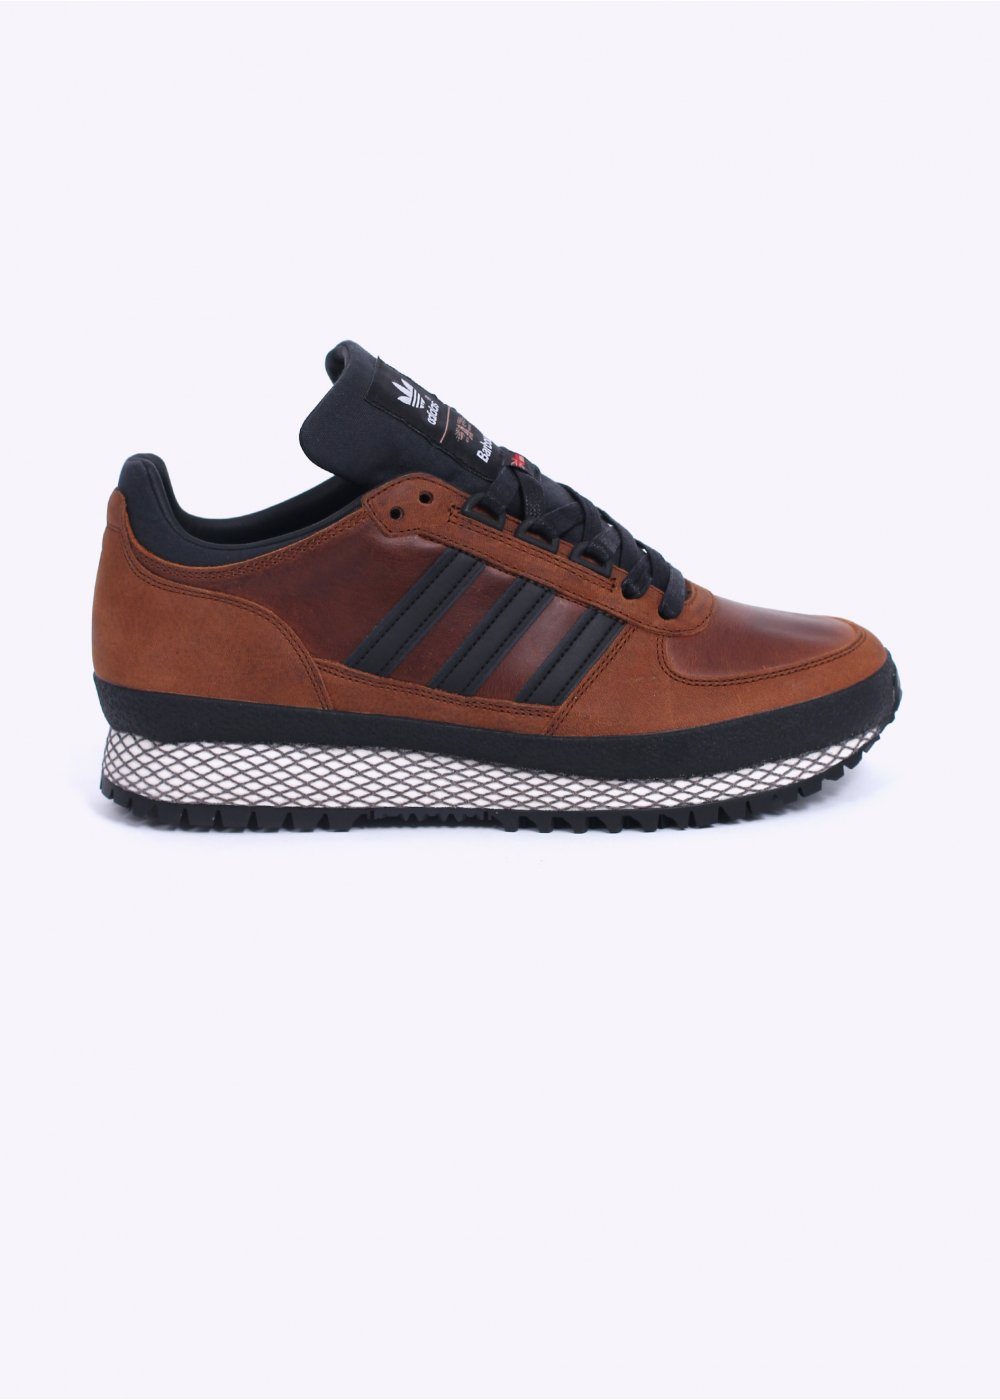 on sale fce4f 2862c adidas Originals x Barbour TS Runner Trainers - Spice Orange / Black